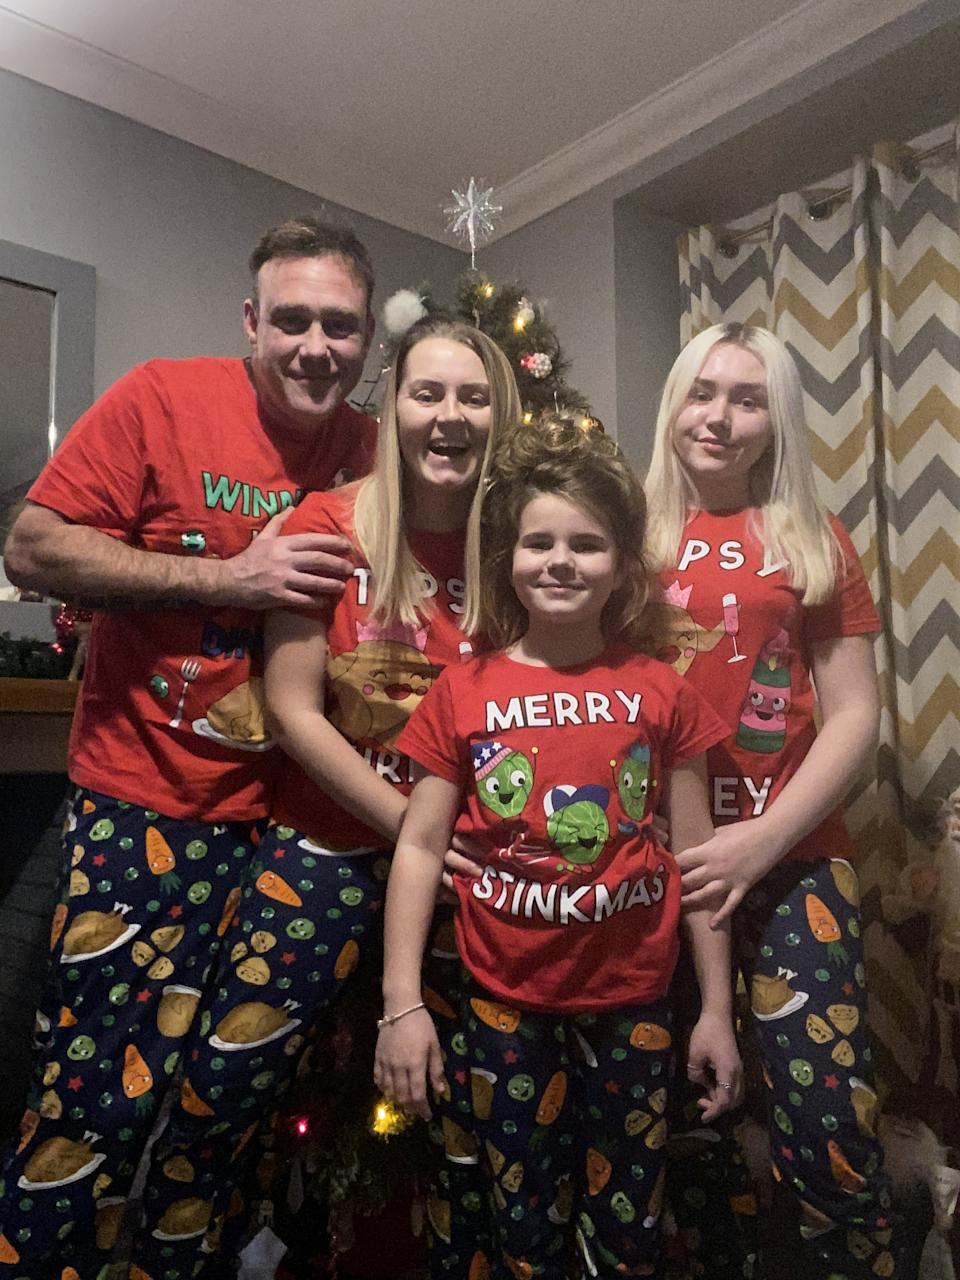 The family found solace in the twinkly tree-lights which brightened up their evenings and gave hope, pictured with her partner Shayne and children, Demi, and Kayleigh, right.  (SWNS)